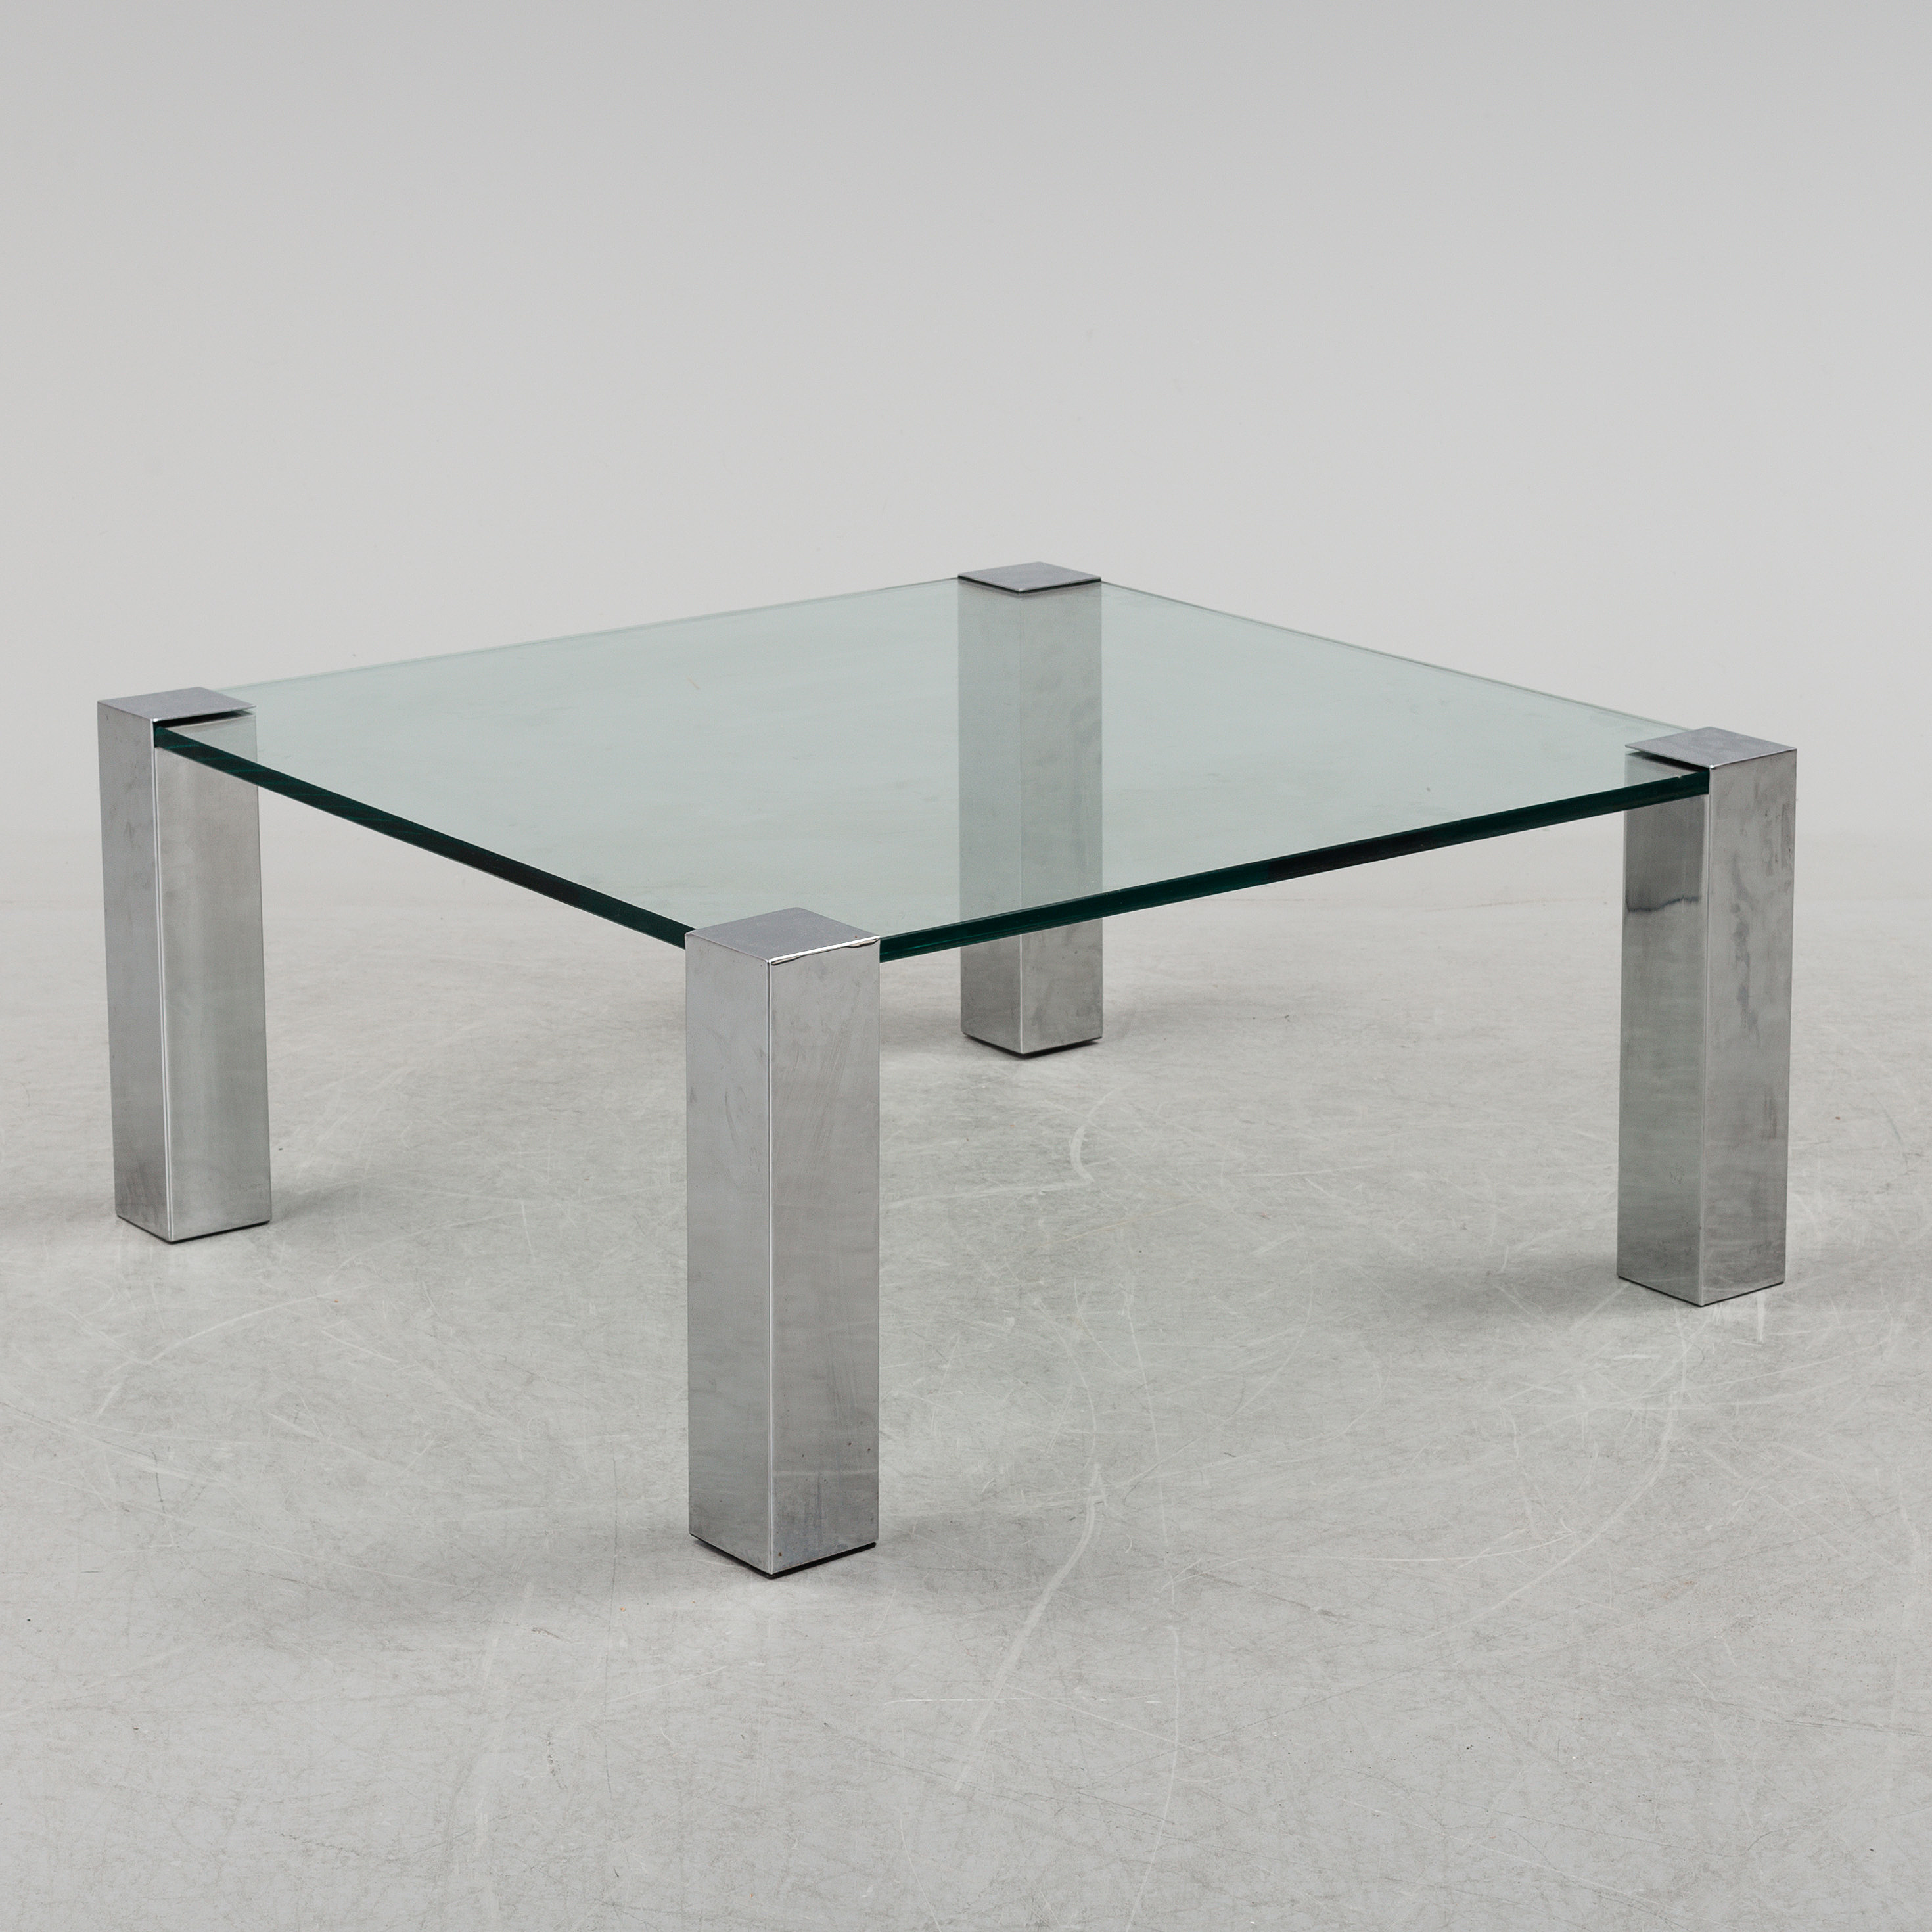 Willy Rizzo Coffee Table.A Willy Rizzo Coffee Table From The 1970 S Bukowskis